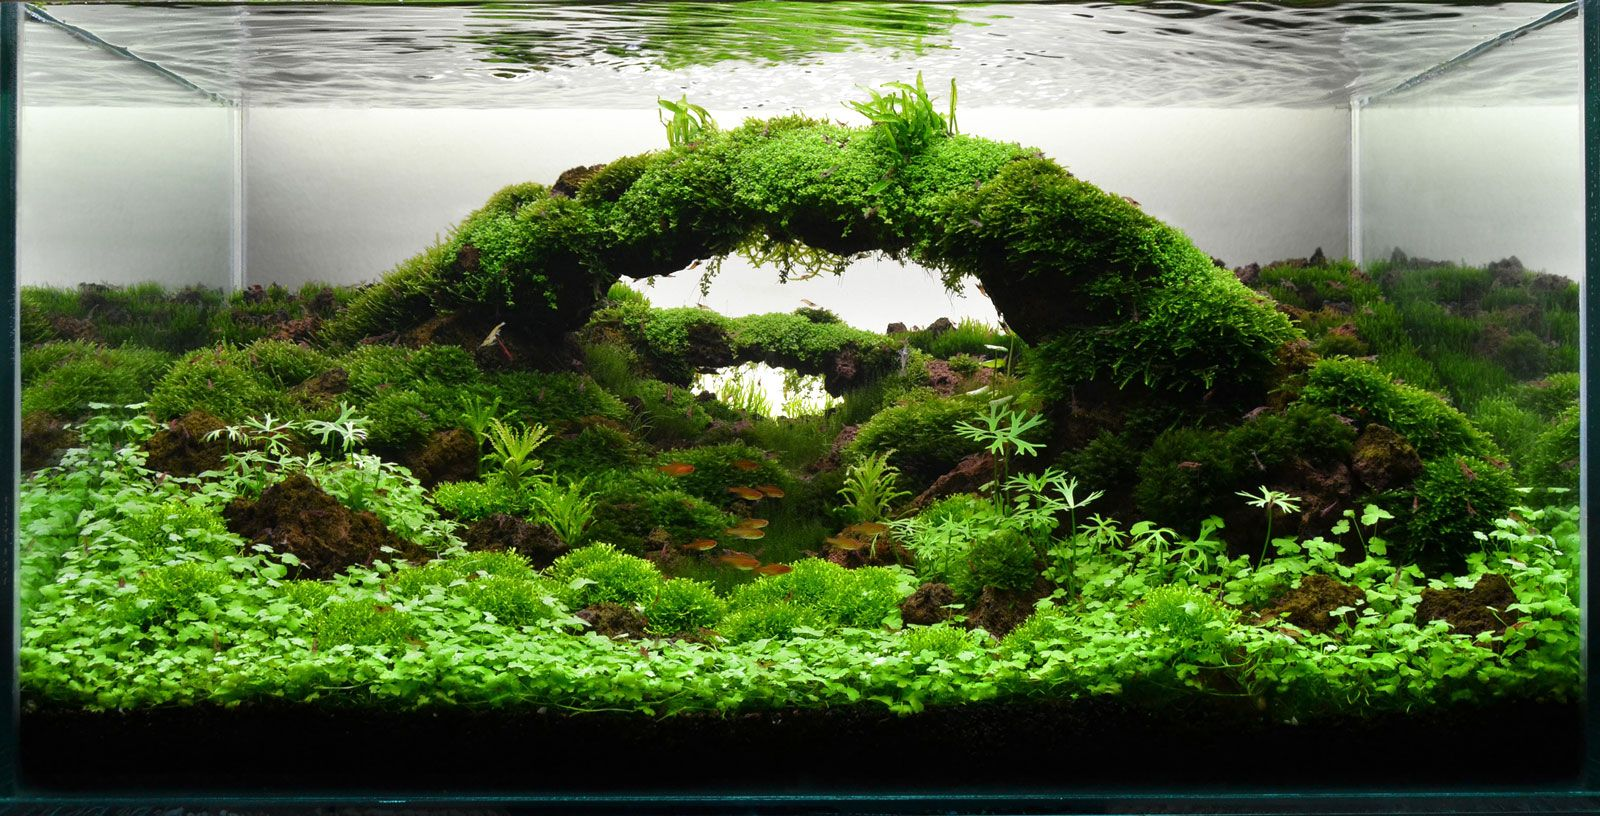 out of ideas: how to draw inspiration from others' aquascapes